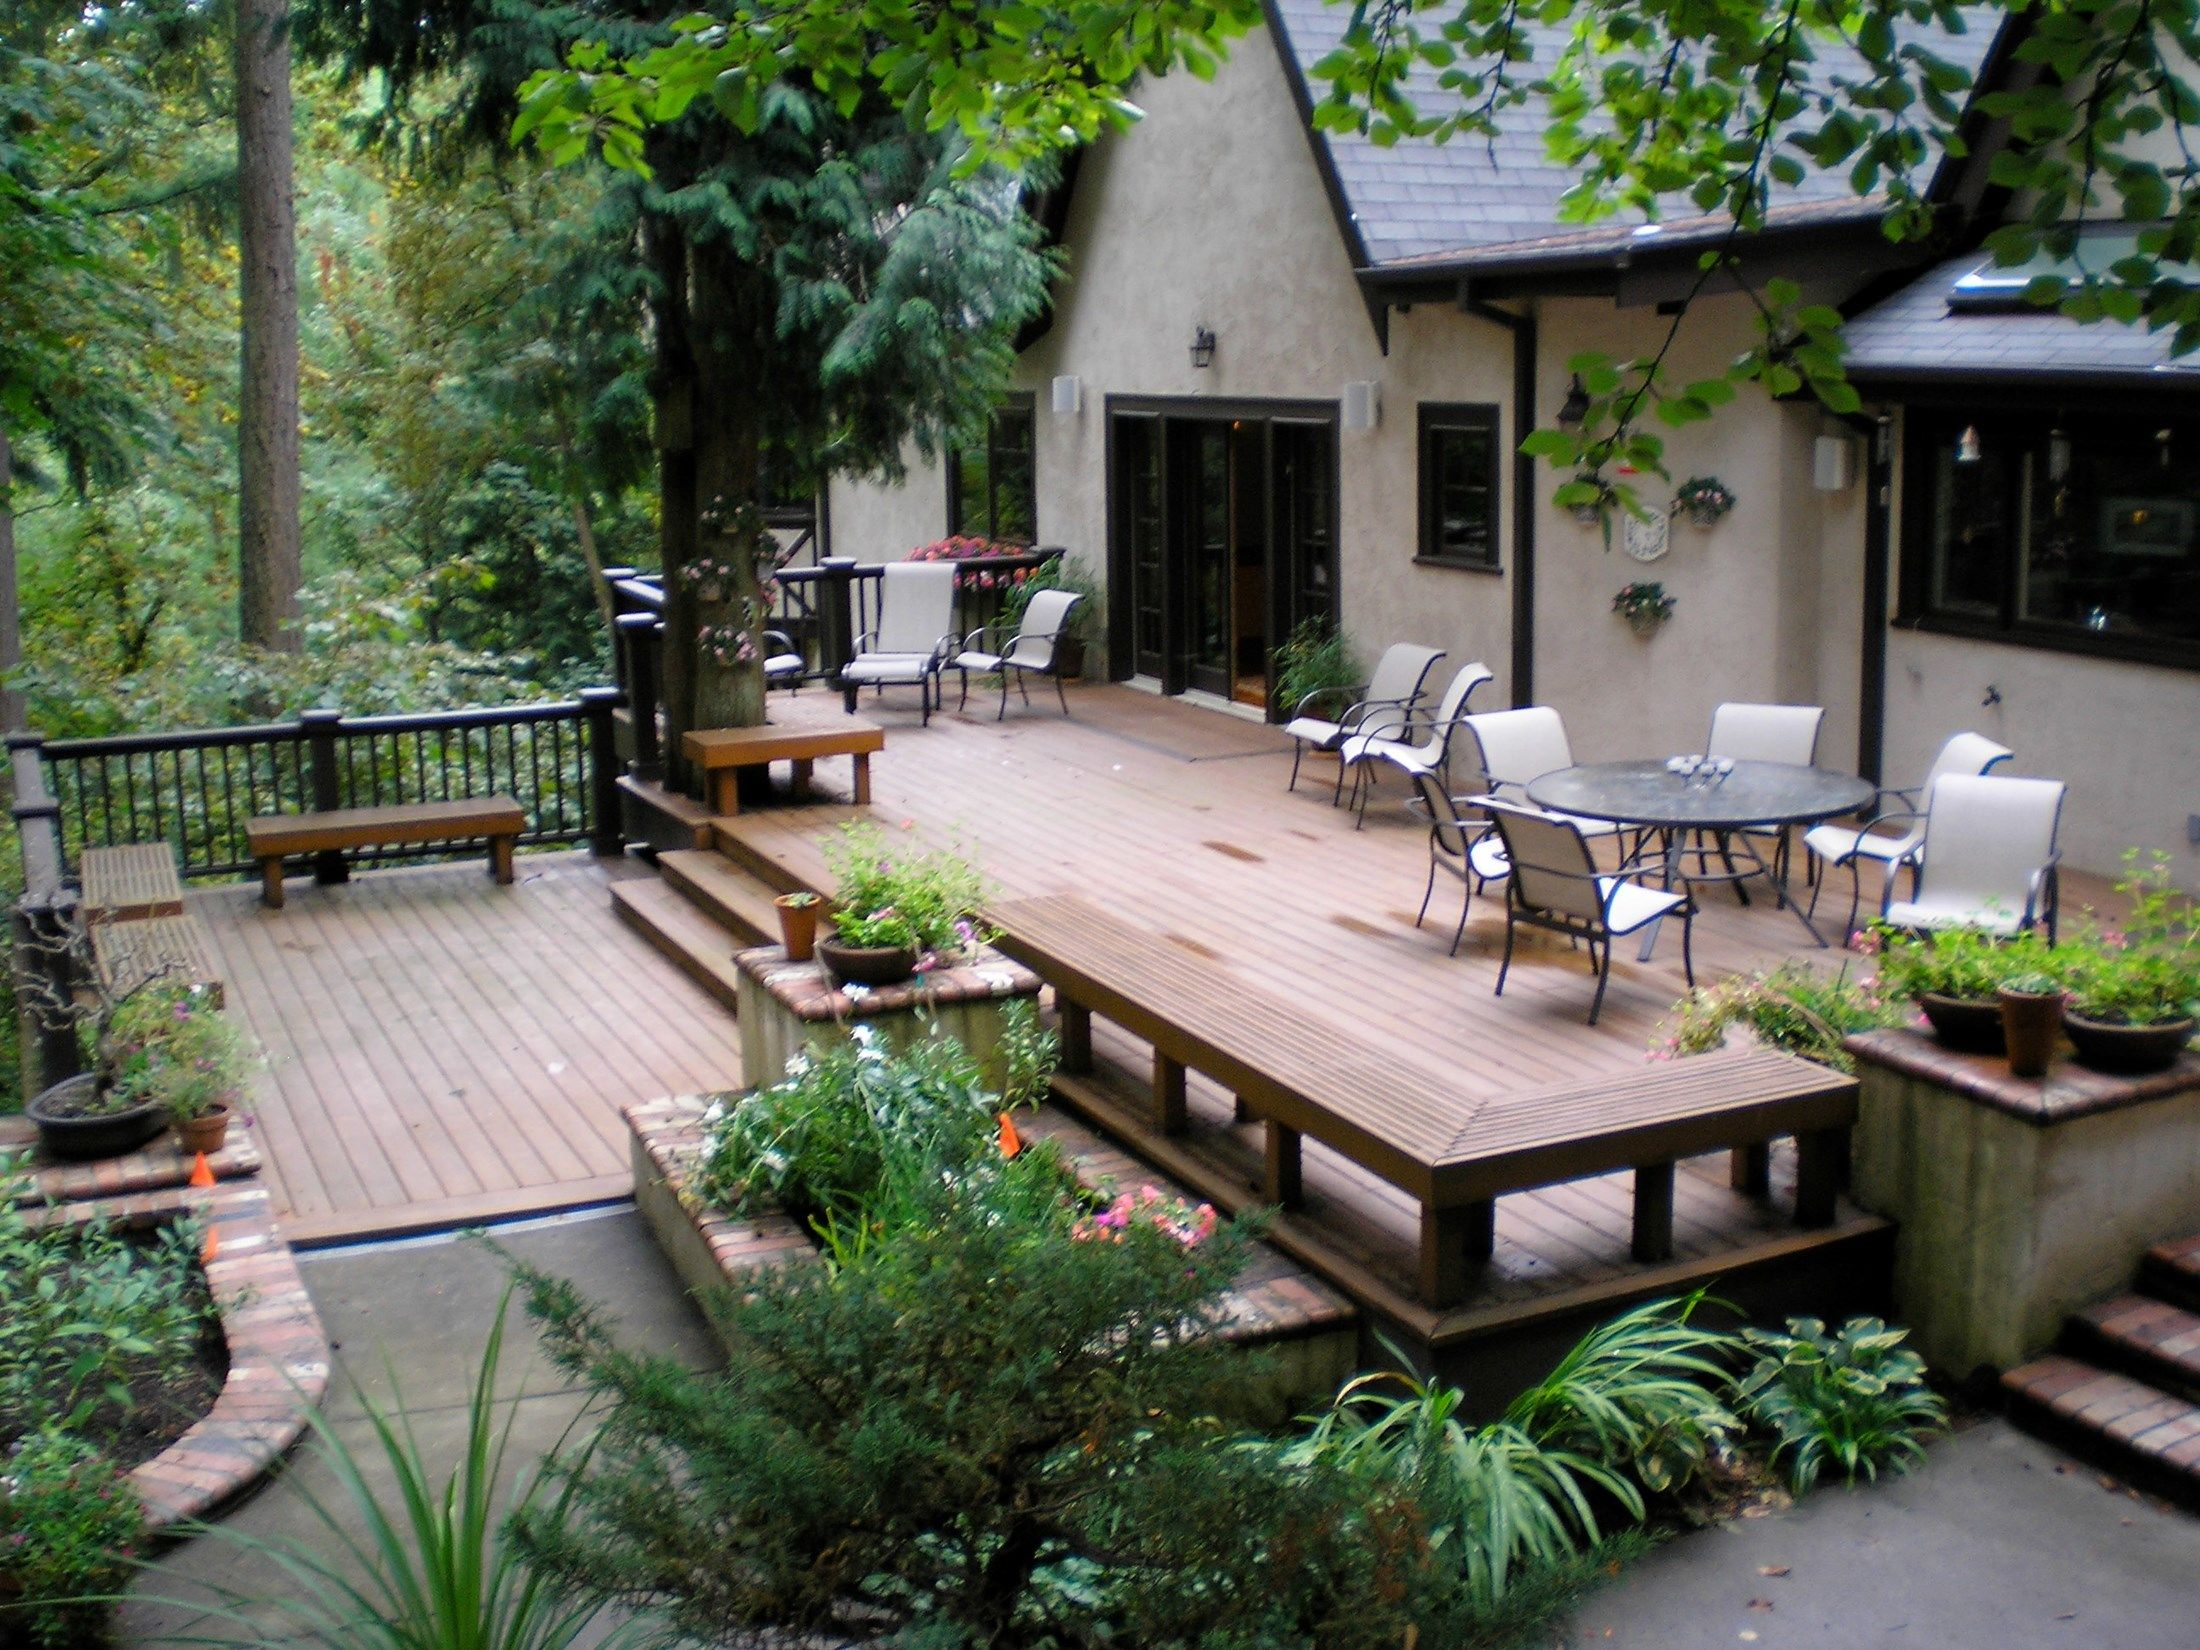 Deck Ideas Designs Pictures Photogallery Decks in 10 Awesome Ways How to Craft Backyard Decks And Patios Ideas